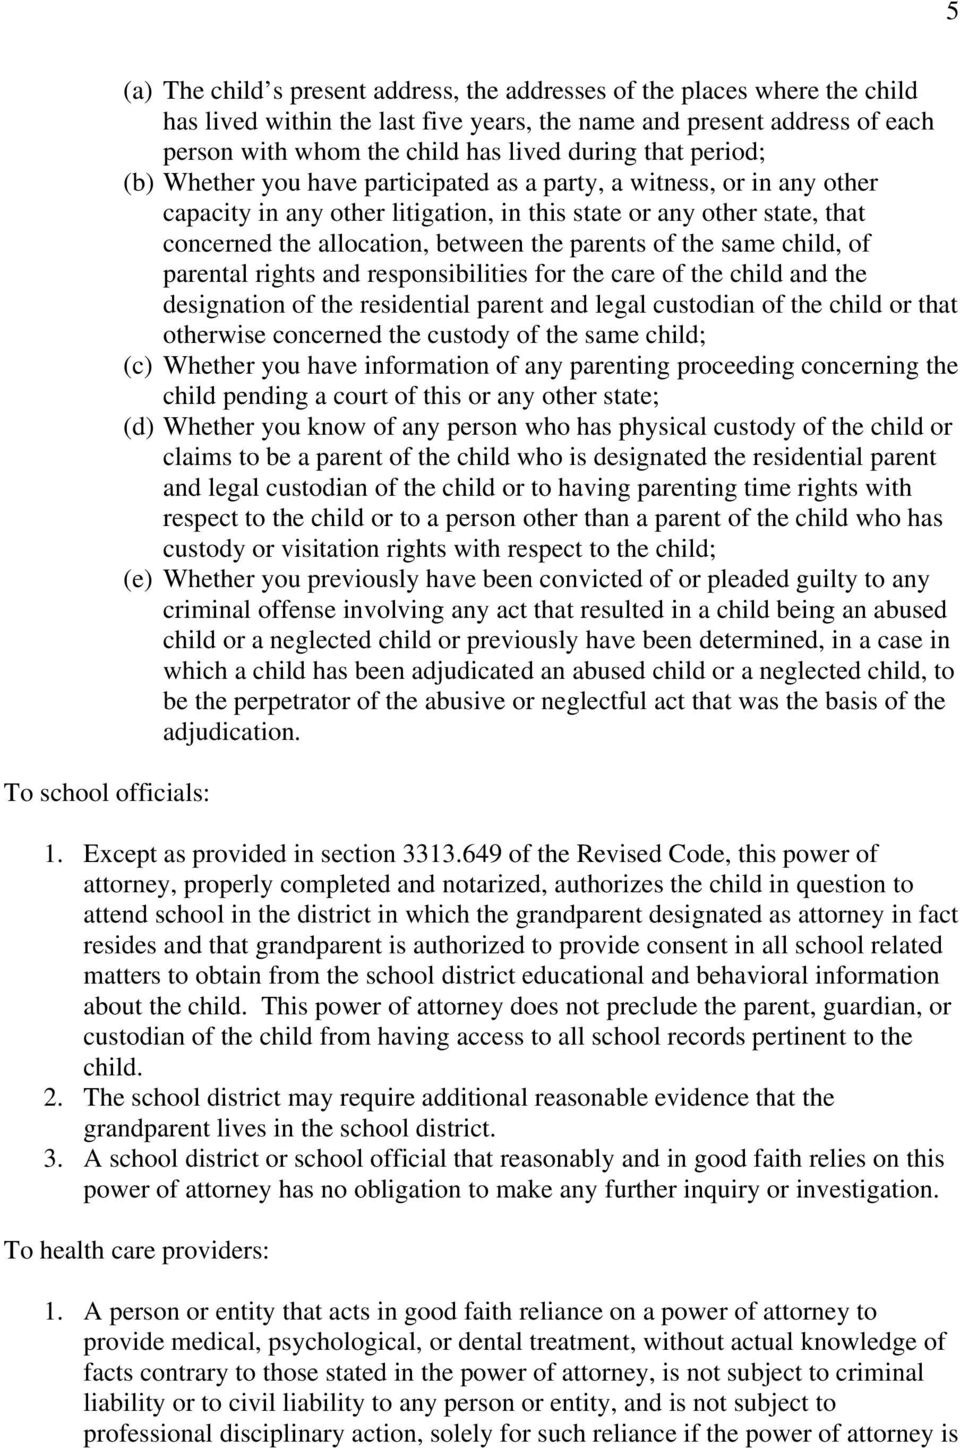 allocation, between the parents of the same child, of parental rights and responsibilities for the care of the child and the designation of the residential parent and legal cusdian of the child or